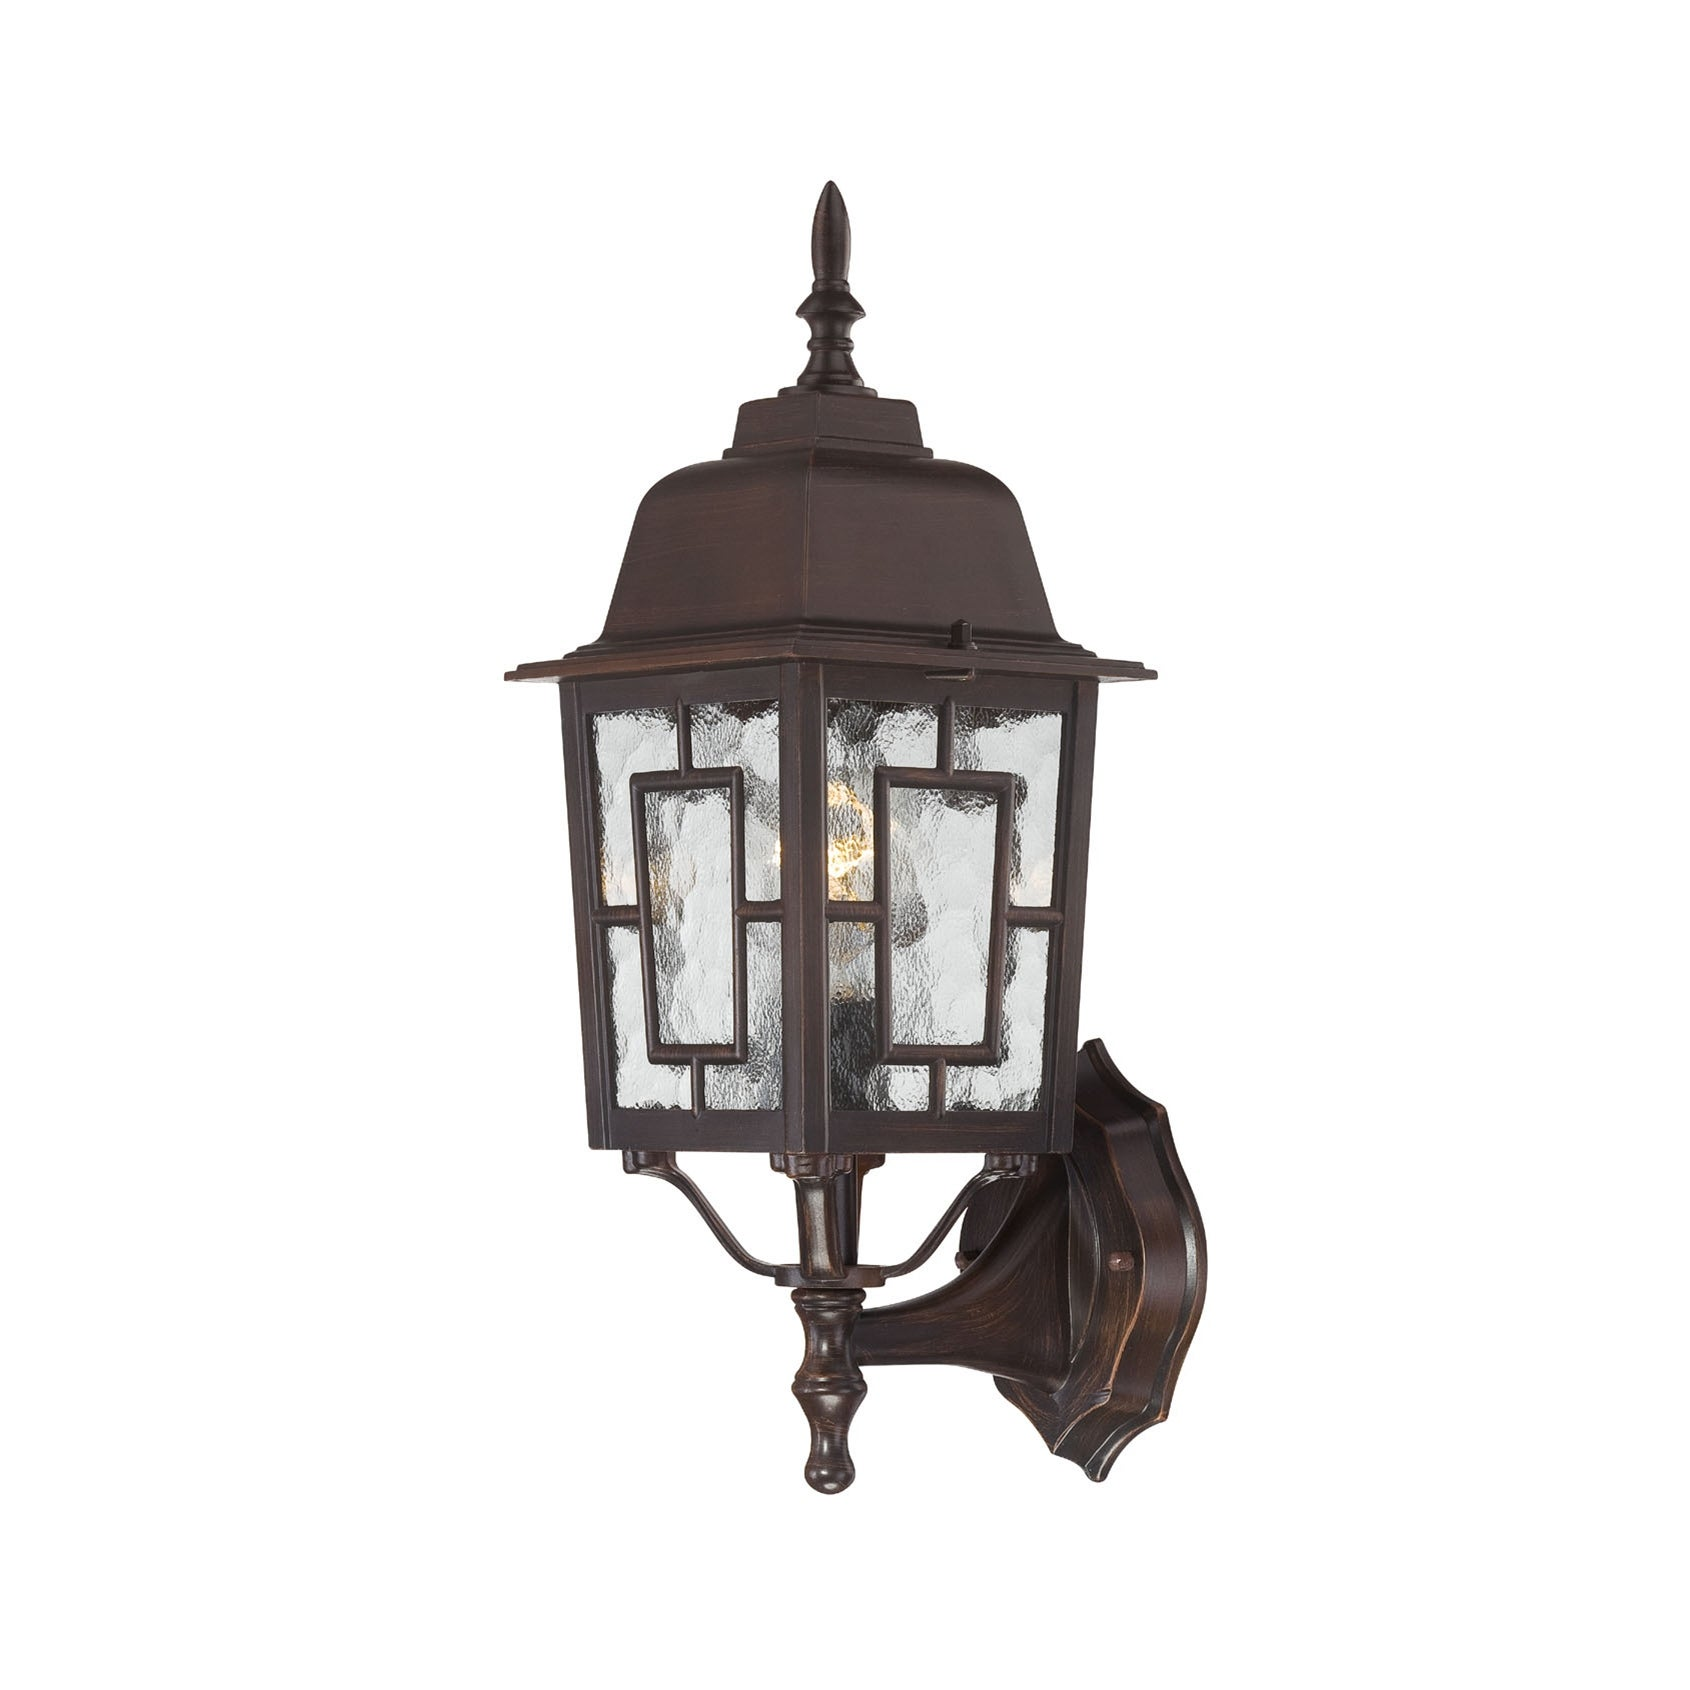 Rustic Bronze Wall Sconces : Nuvo Banyon 1-light Rustic Bronze 17-inch Wall Sconce - Free Shipping On Orders Over USD 45 ...